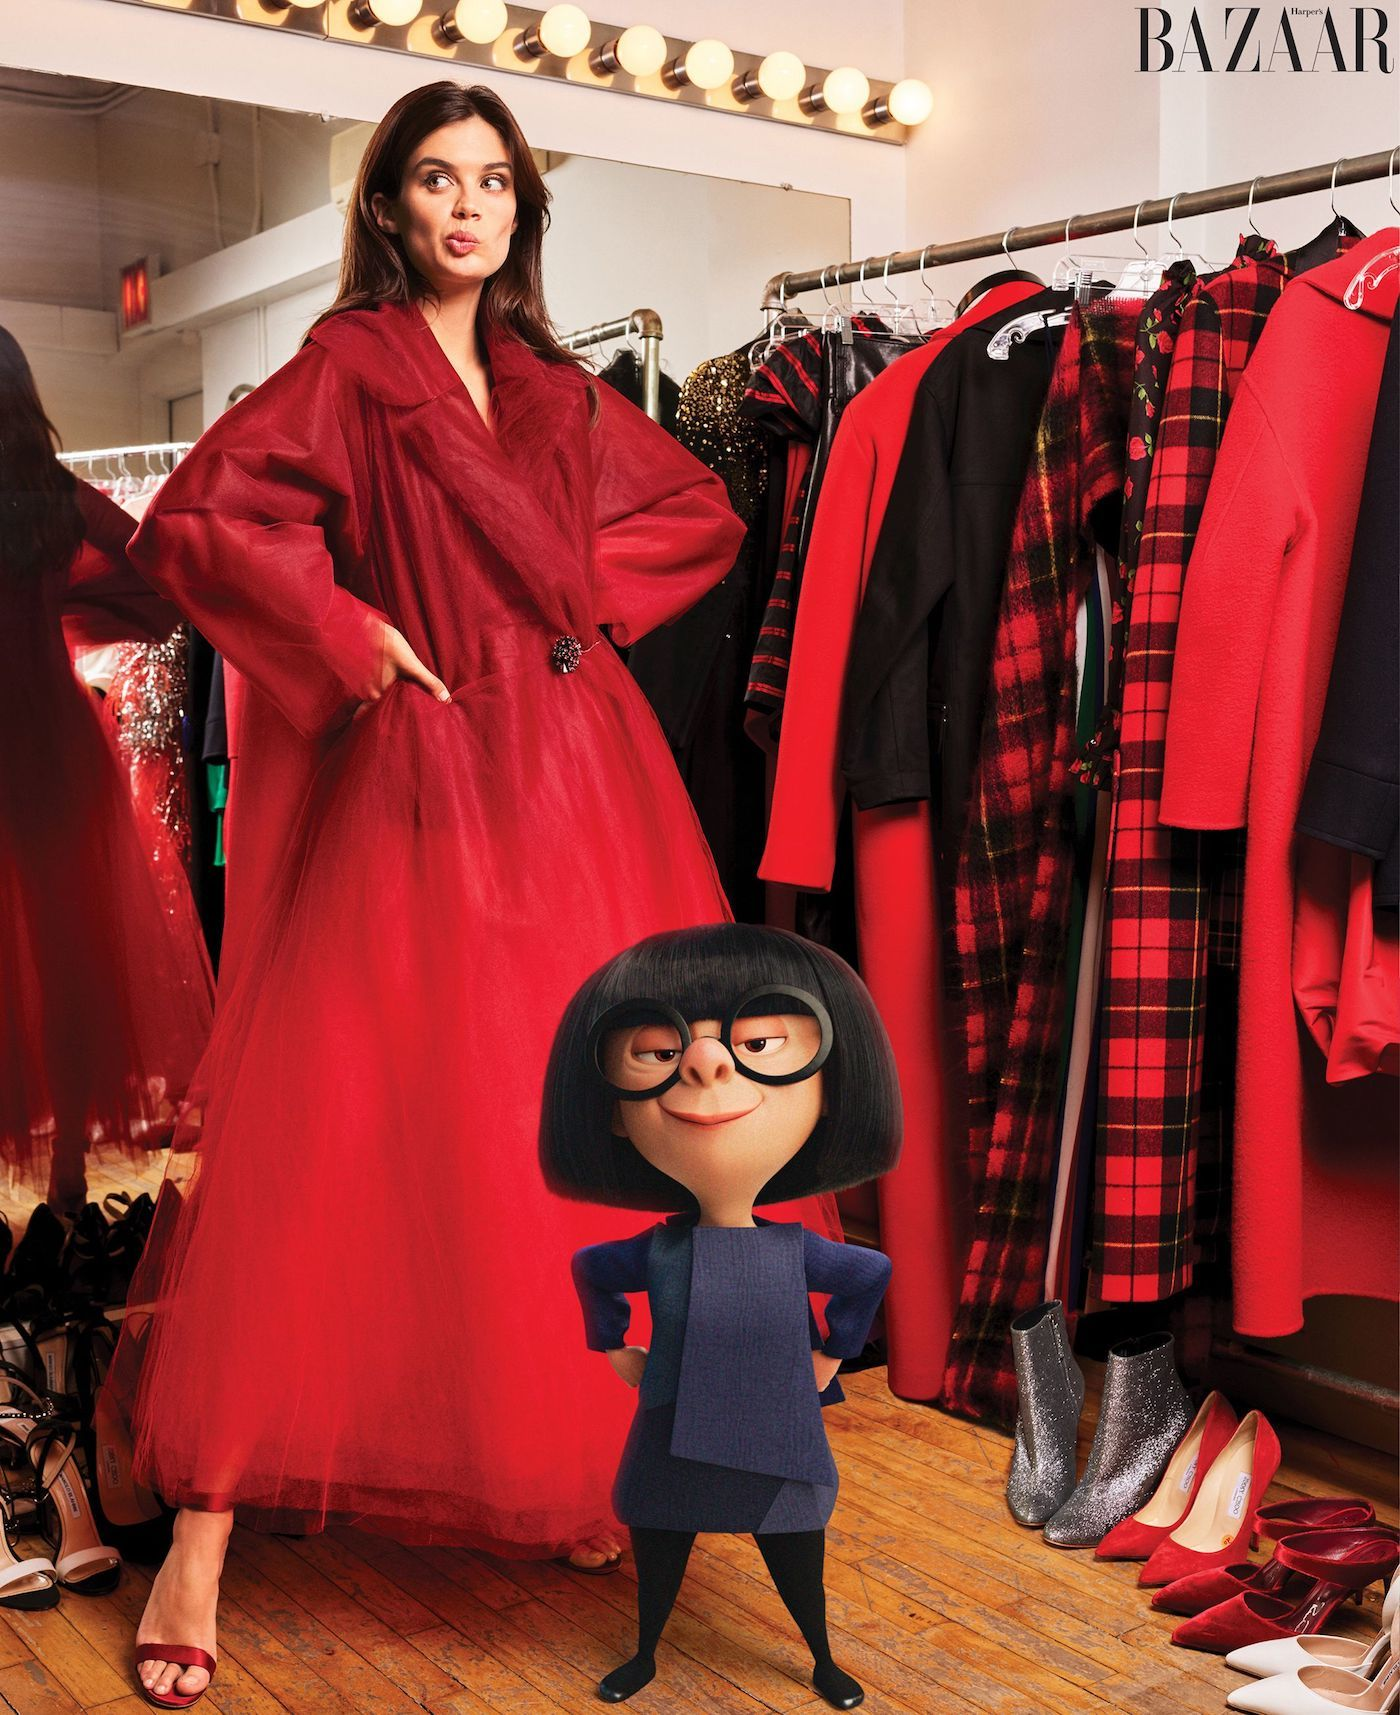 Outfit style from Edna Mode's Interview in Harper's Bazaar